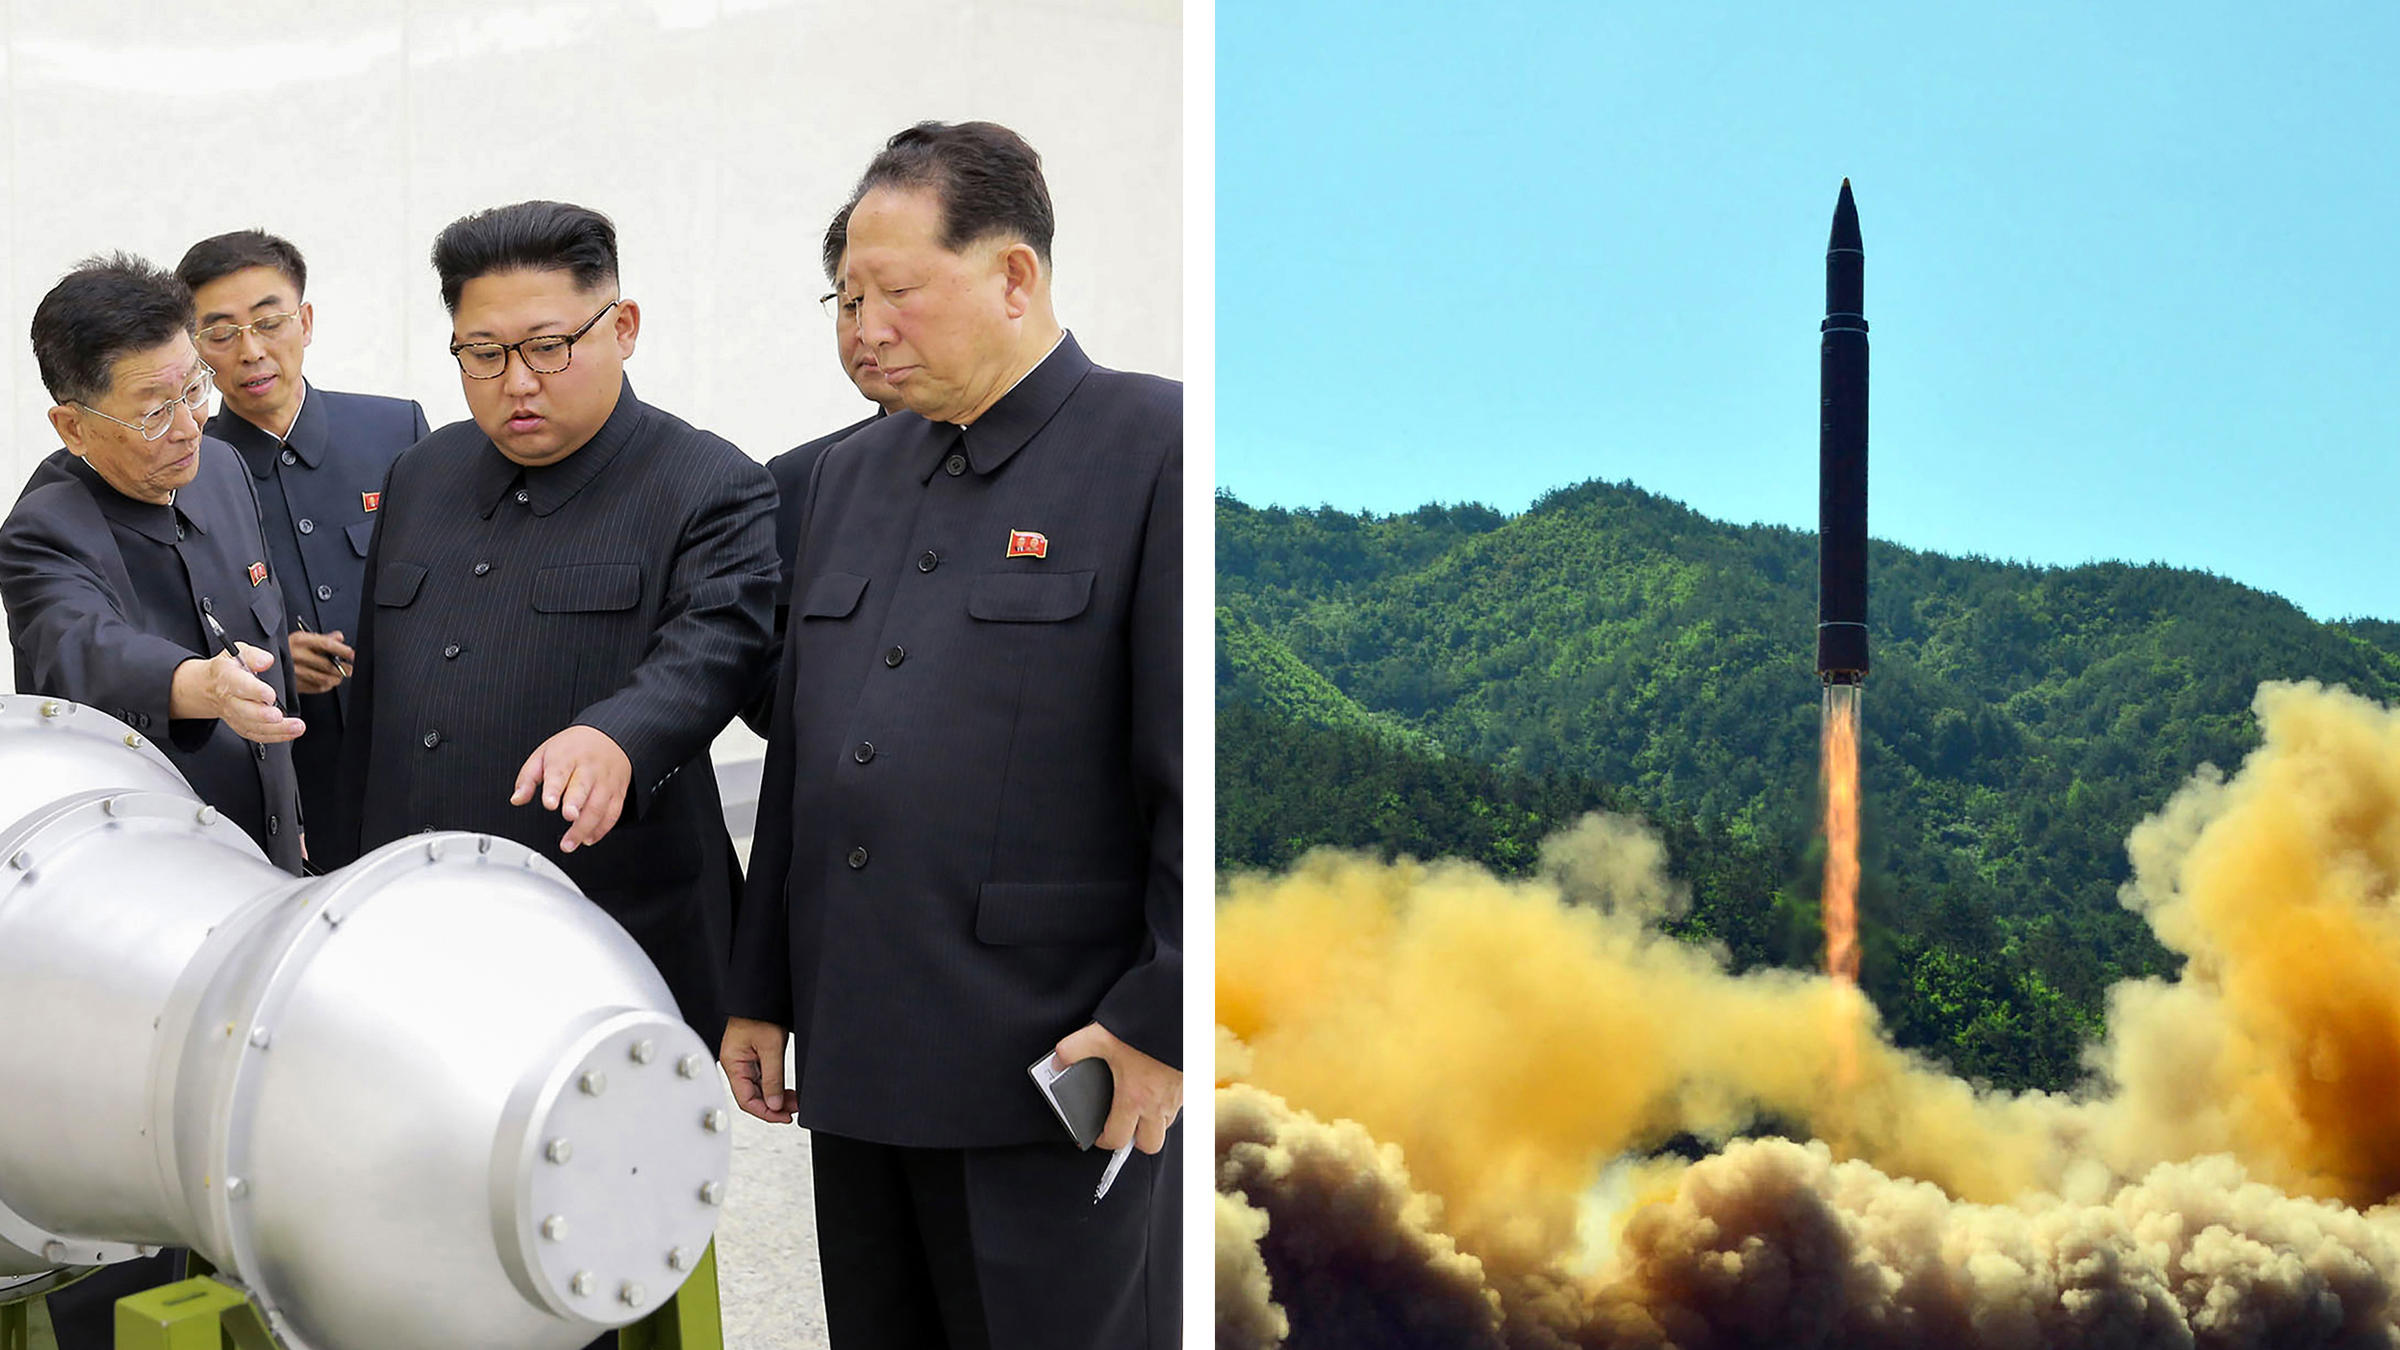 Seoul intends to pursue the denuclearization of the Korean Peninsula